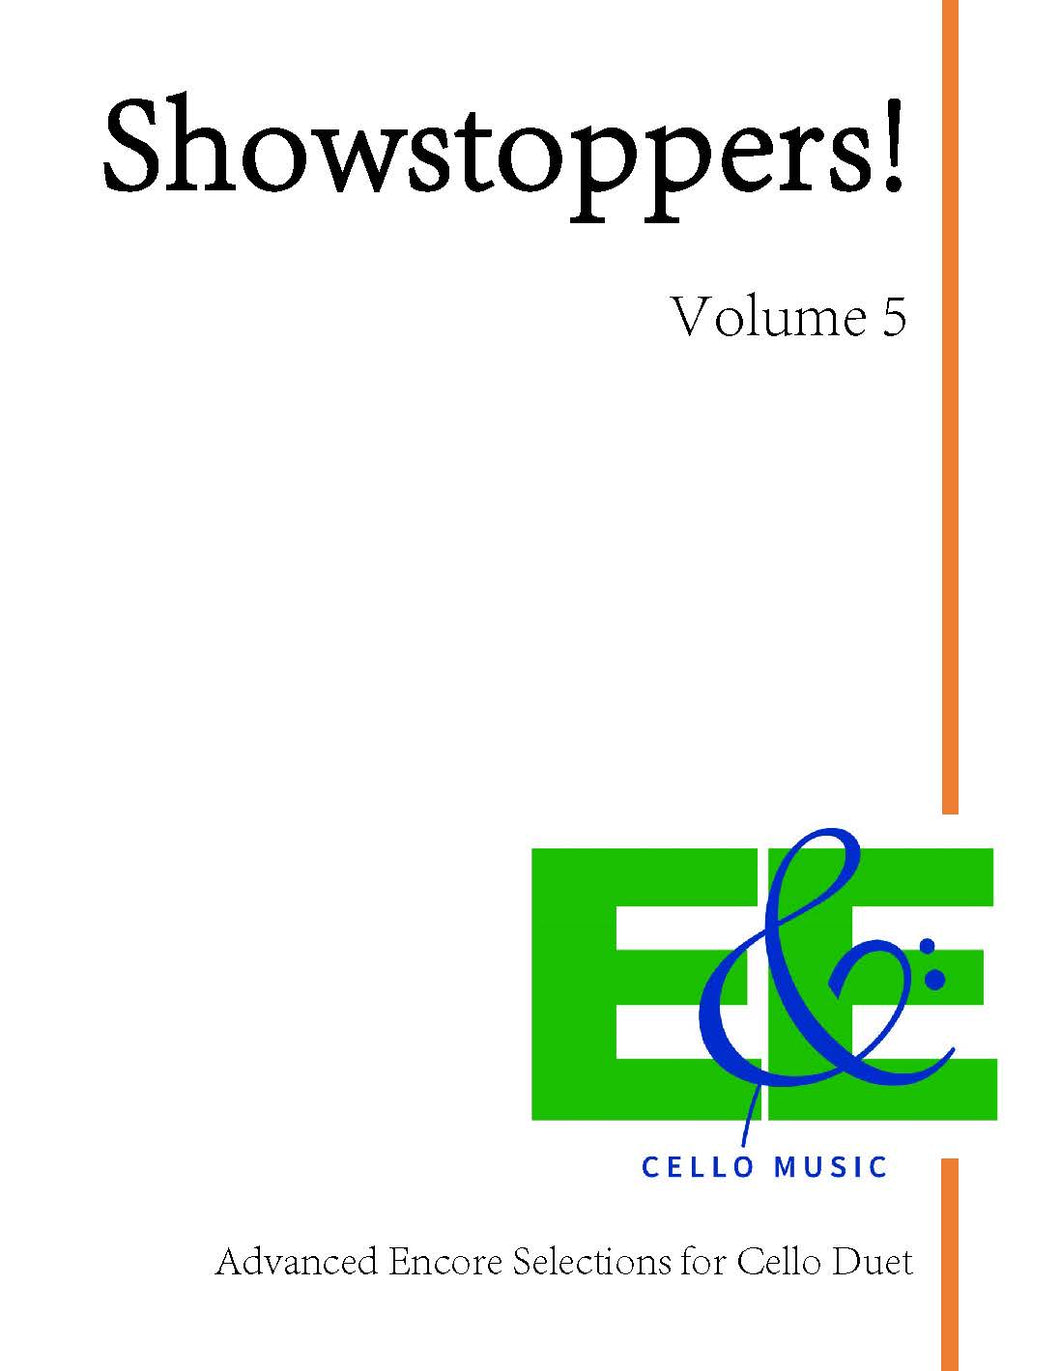 Showstoppers! Vol. 5<br>Advanced Encore Selections<br> for Cello Duet<br>*Digital Download